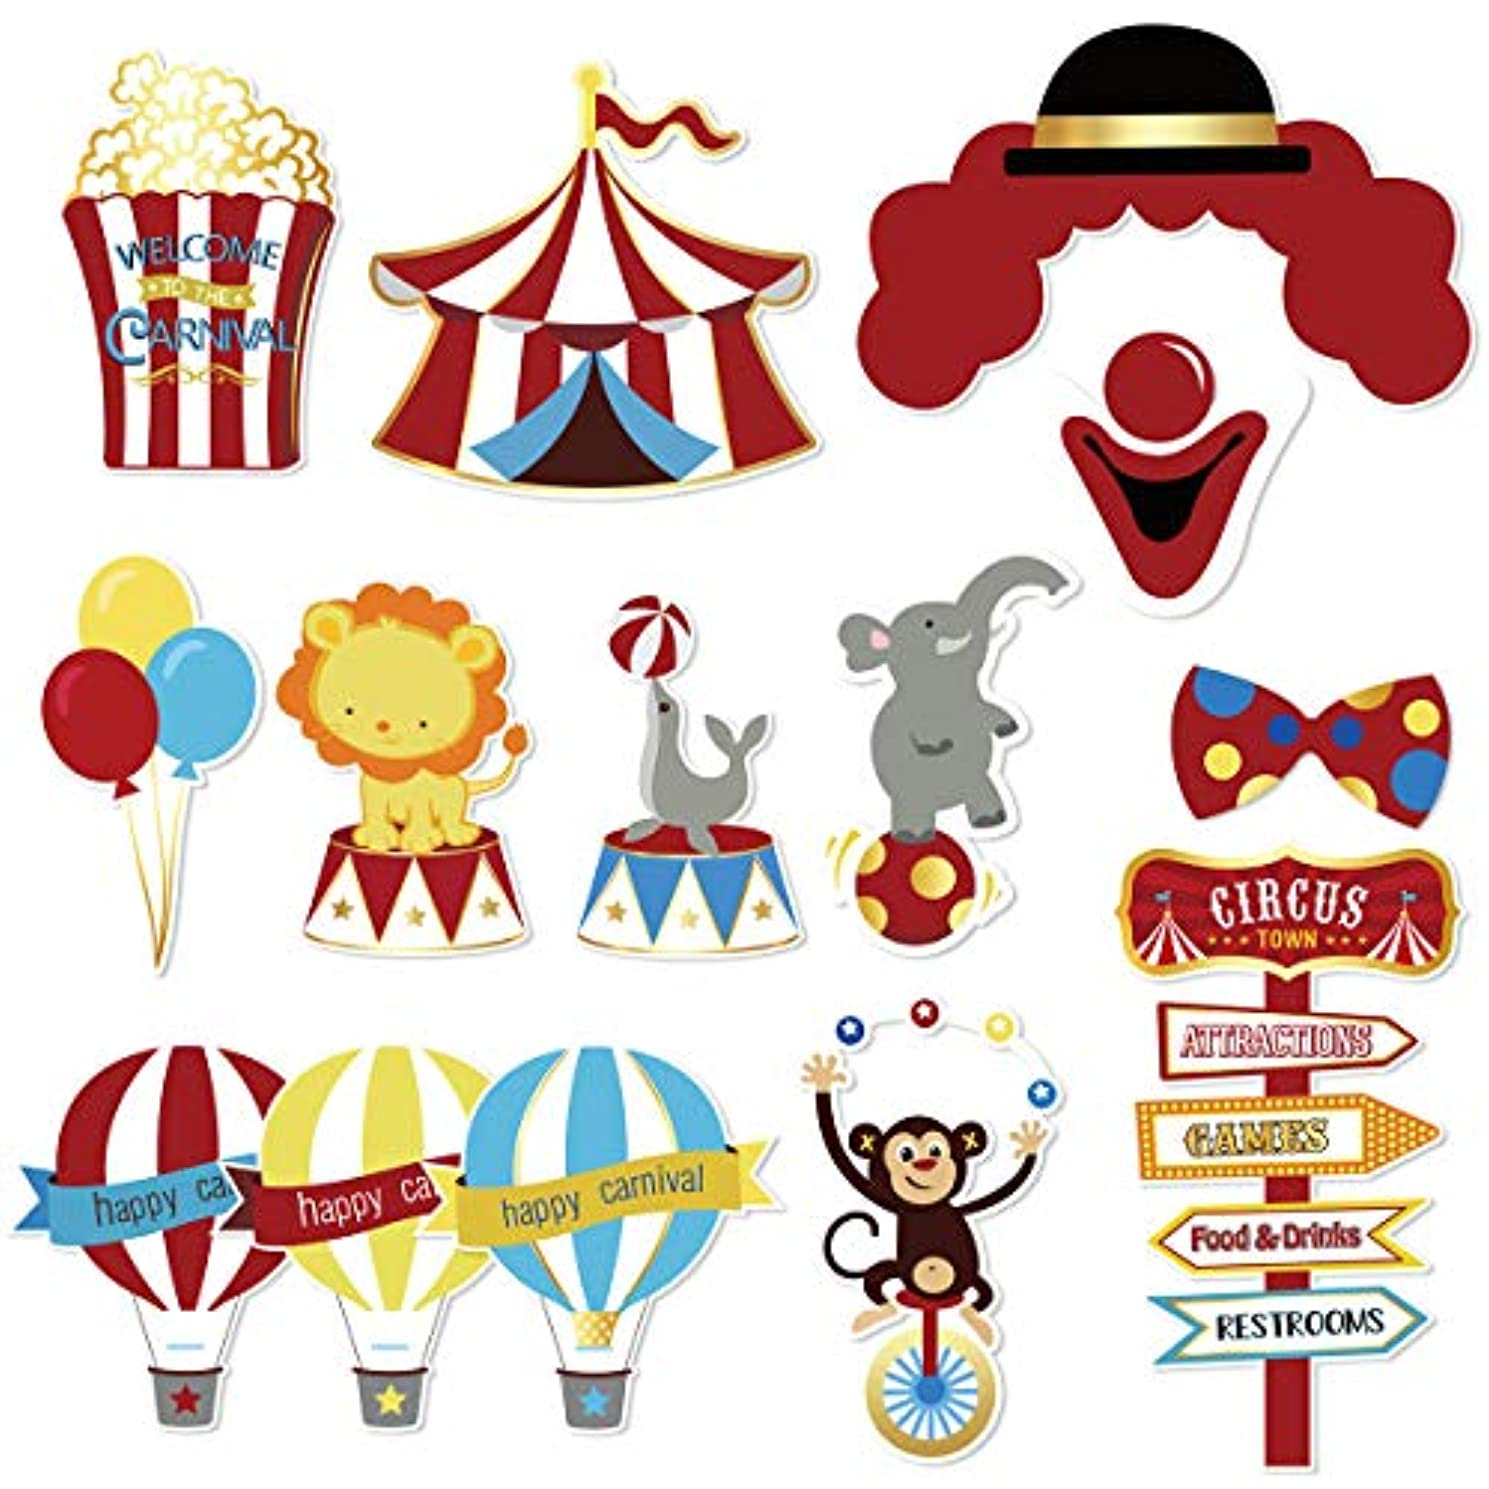 NICROLANDEE Carnival Photo Booth Prop, Circus Theme Party Decorations for Kids Birthday Baby Shower Bachelorette Dress-up Acessories